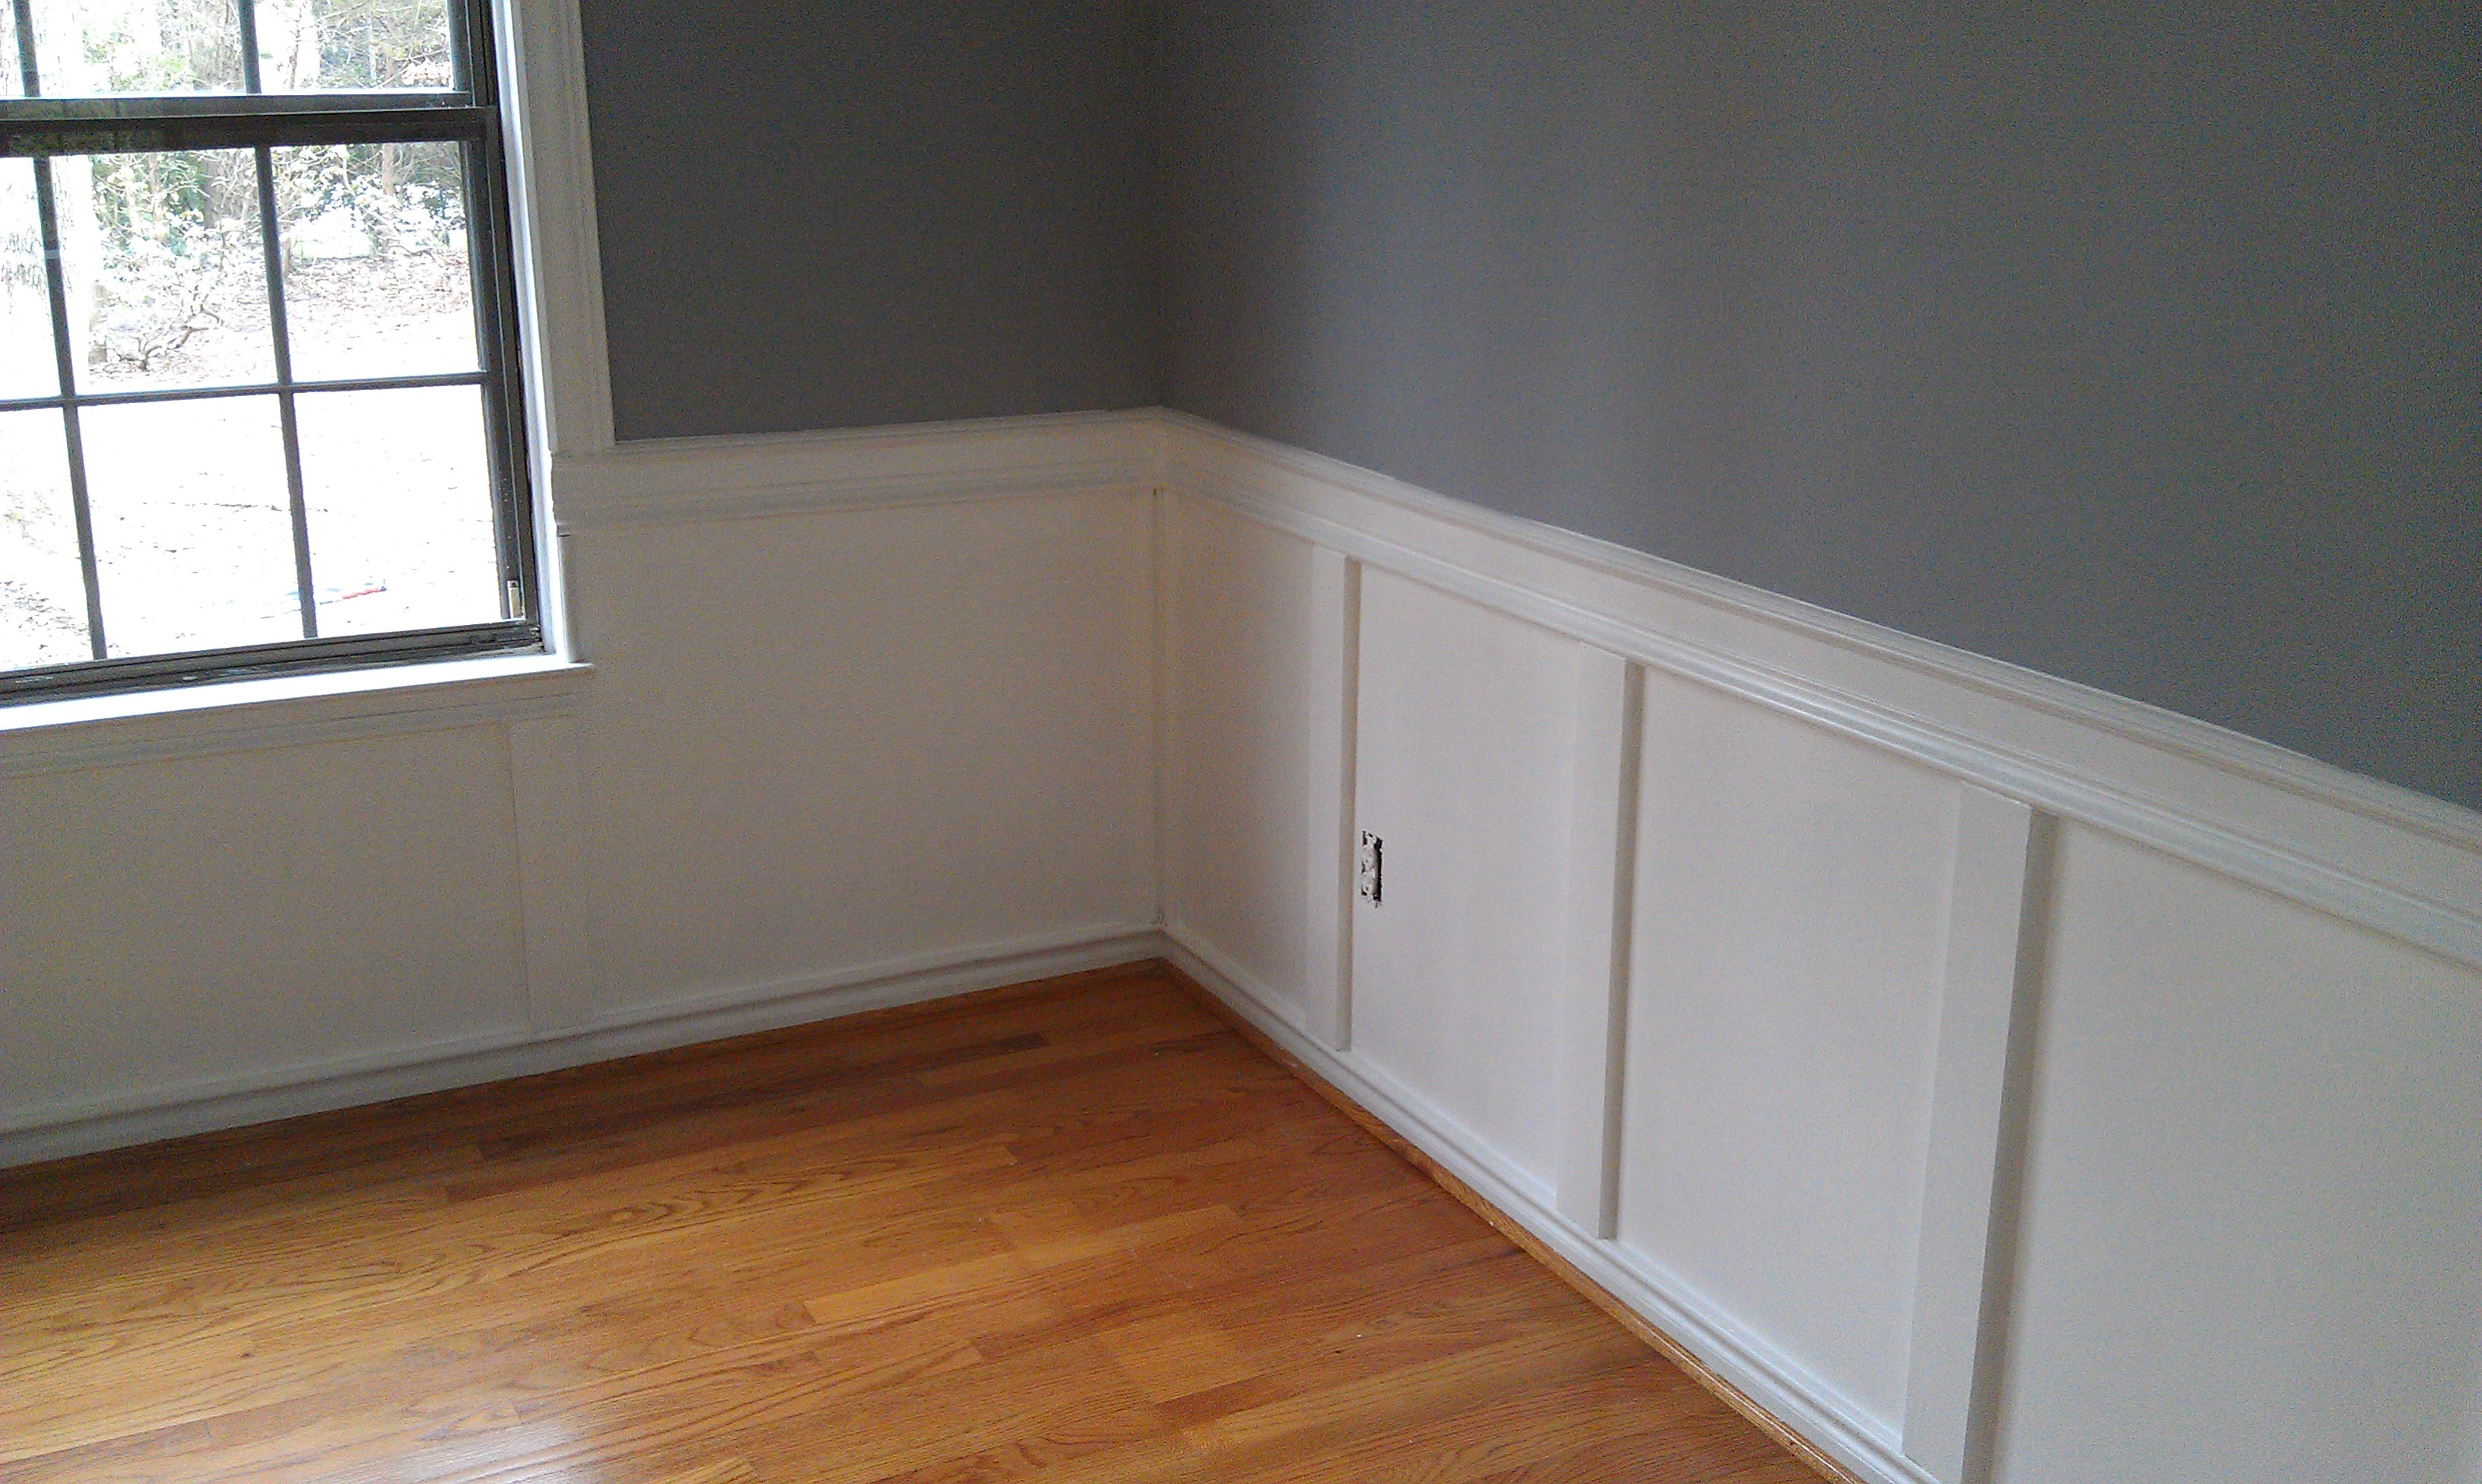 Wainscoting sophia rae home furnishings for Dining room trim ideas